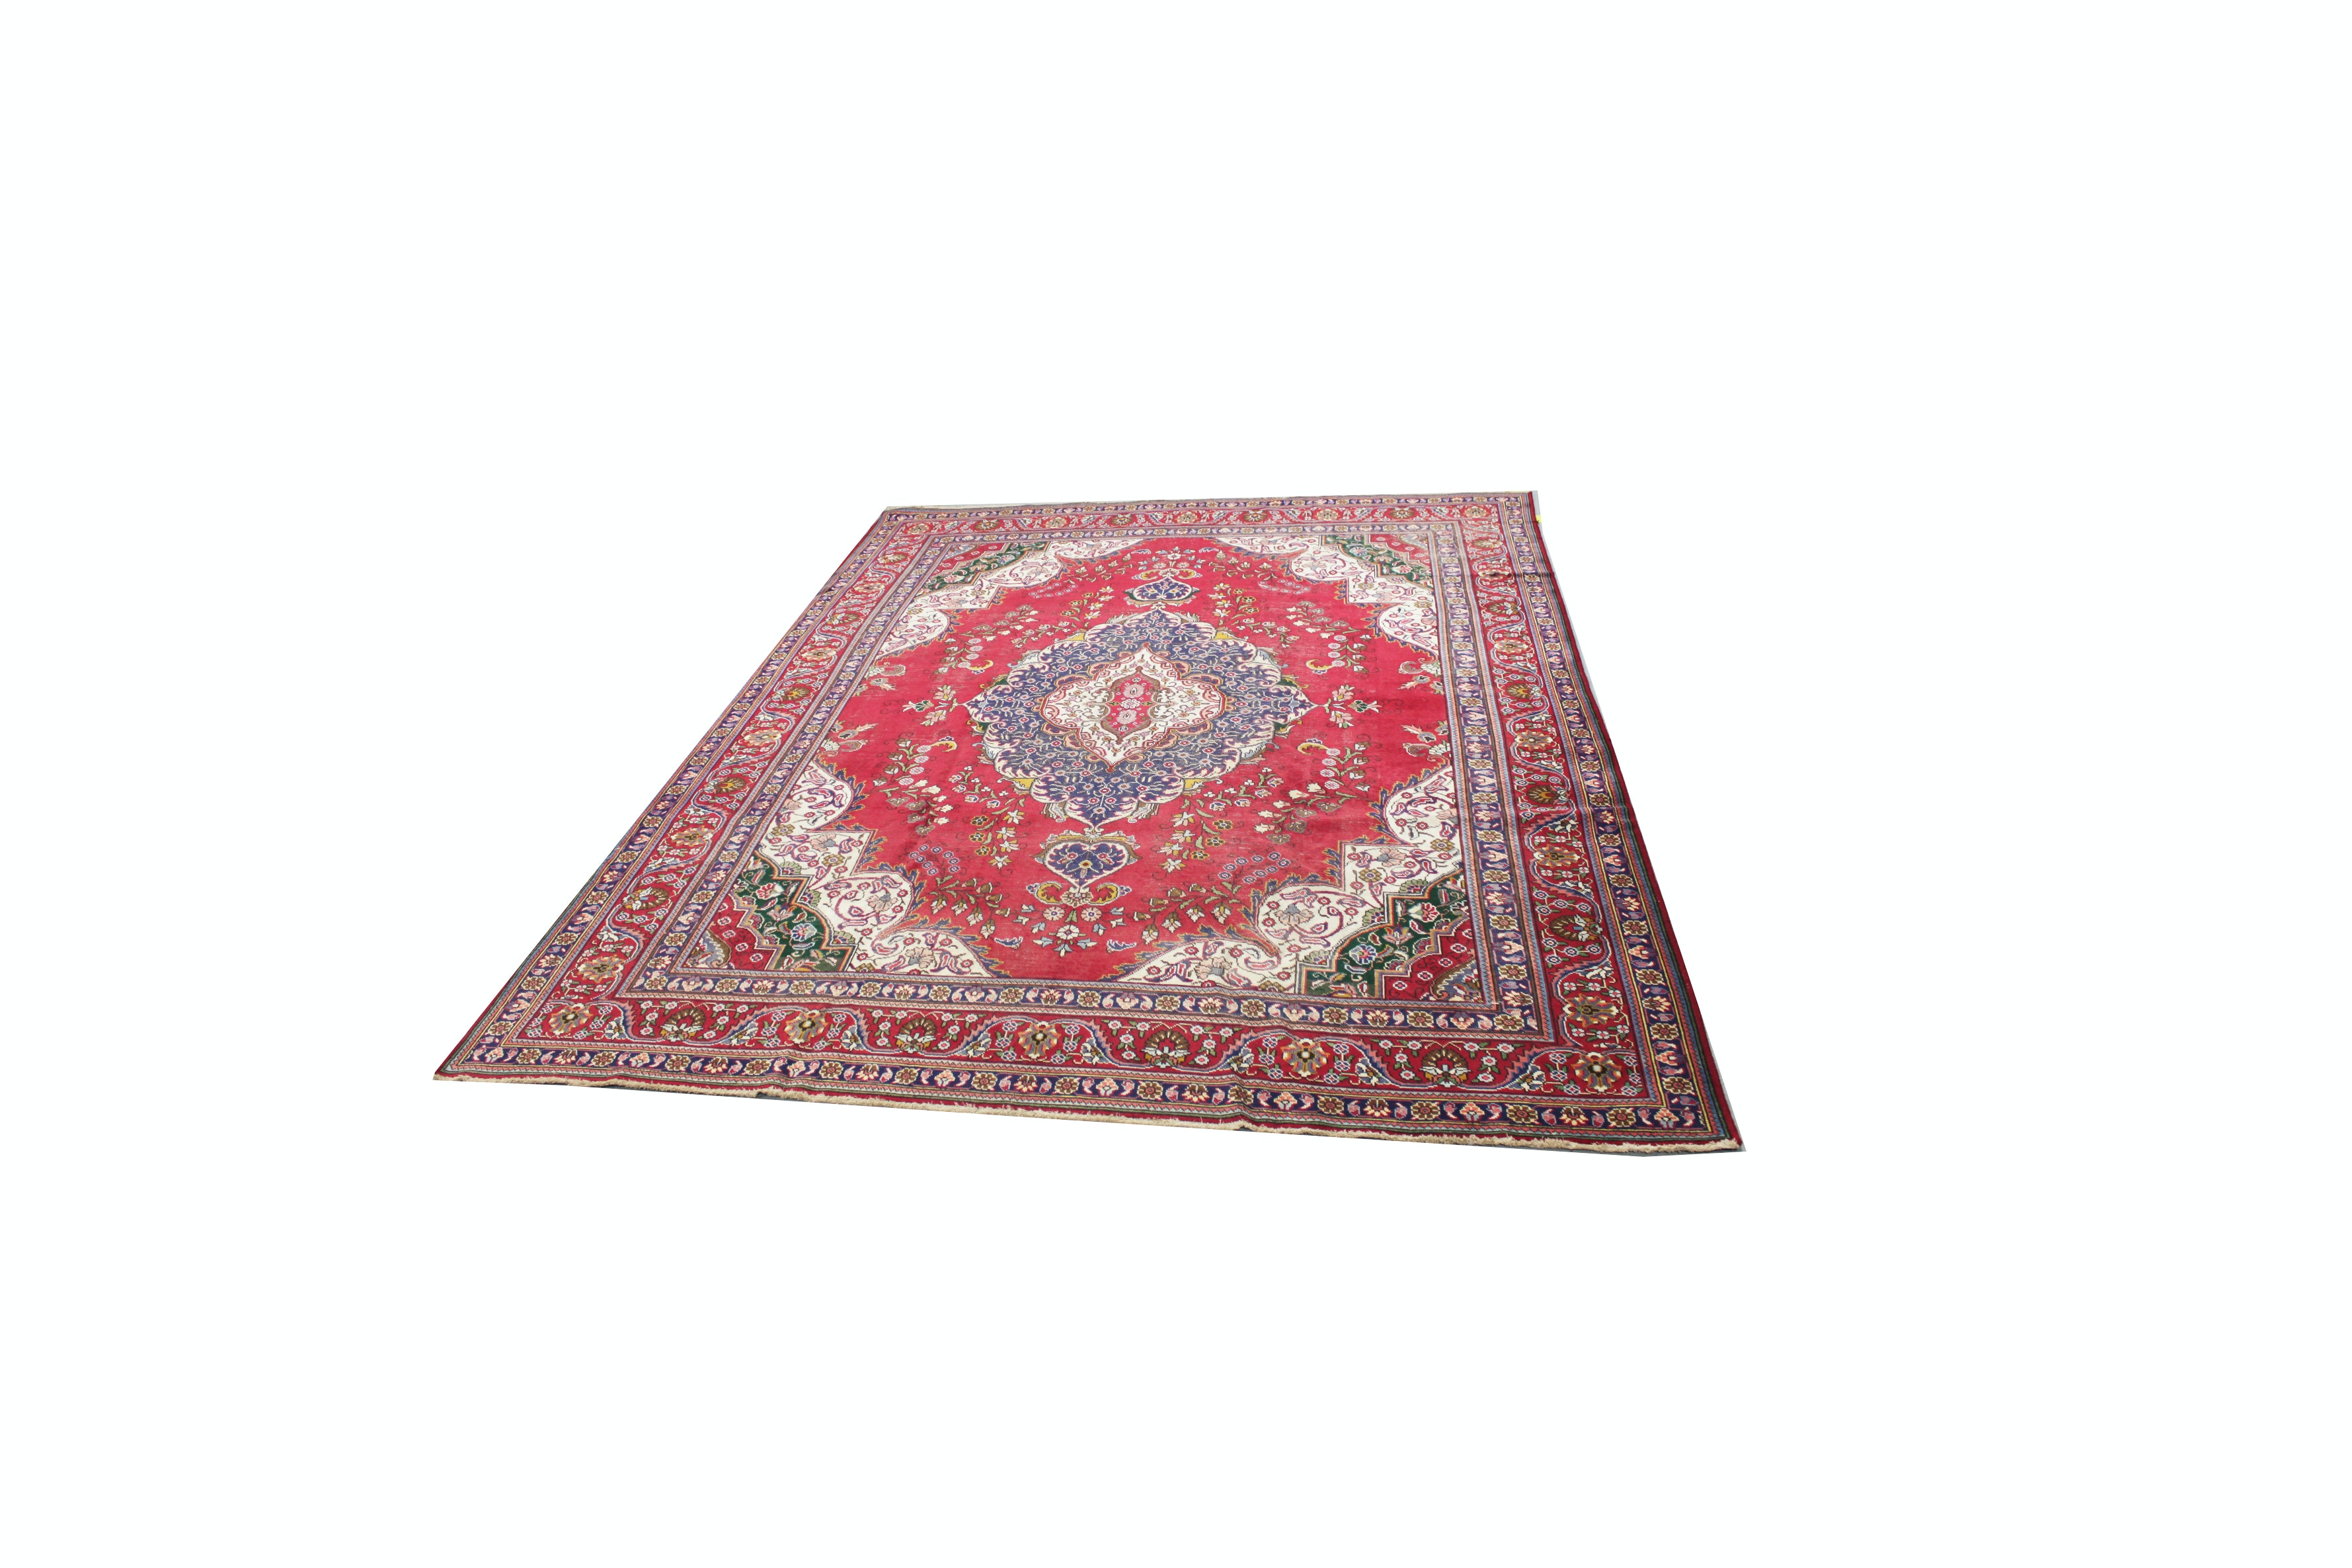 Semi-Antique Hand-Knotted Persian Area Rug